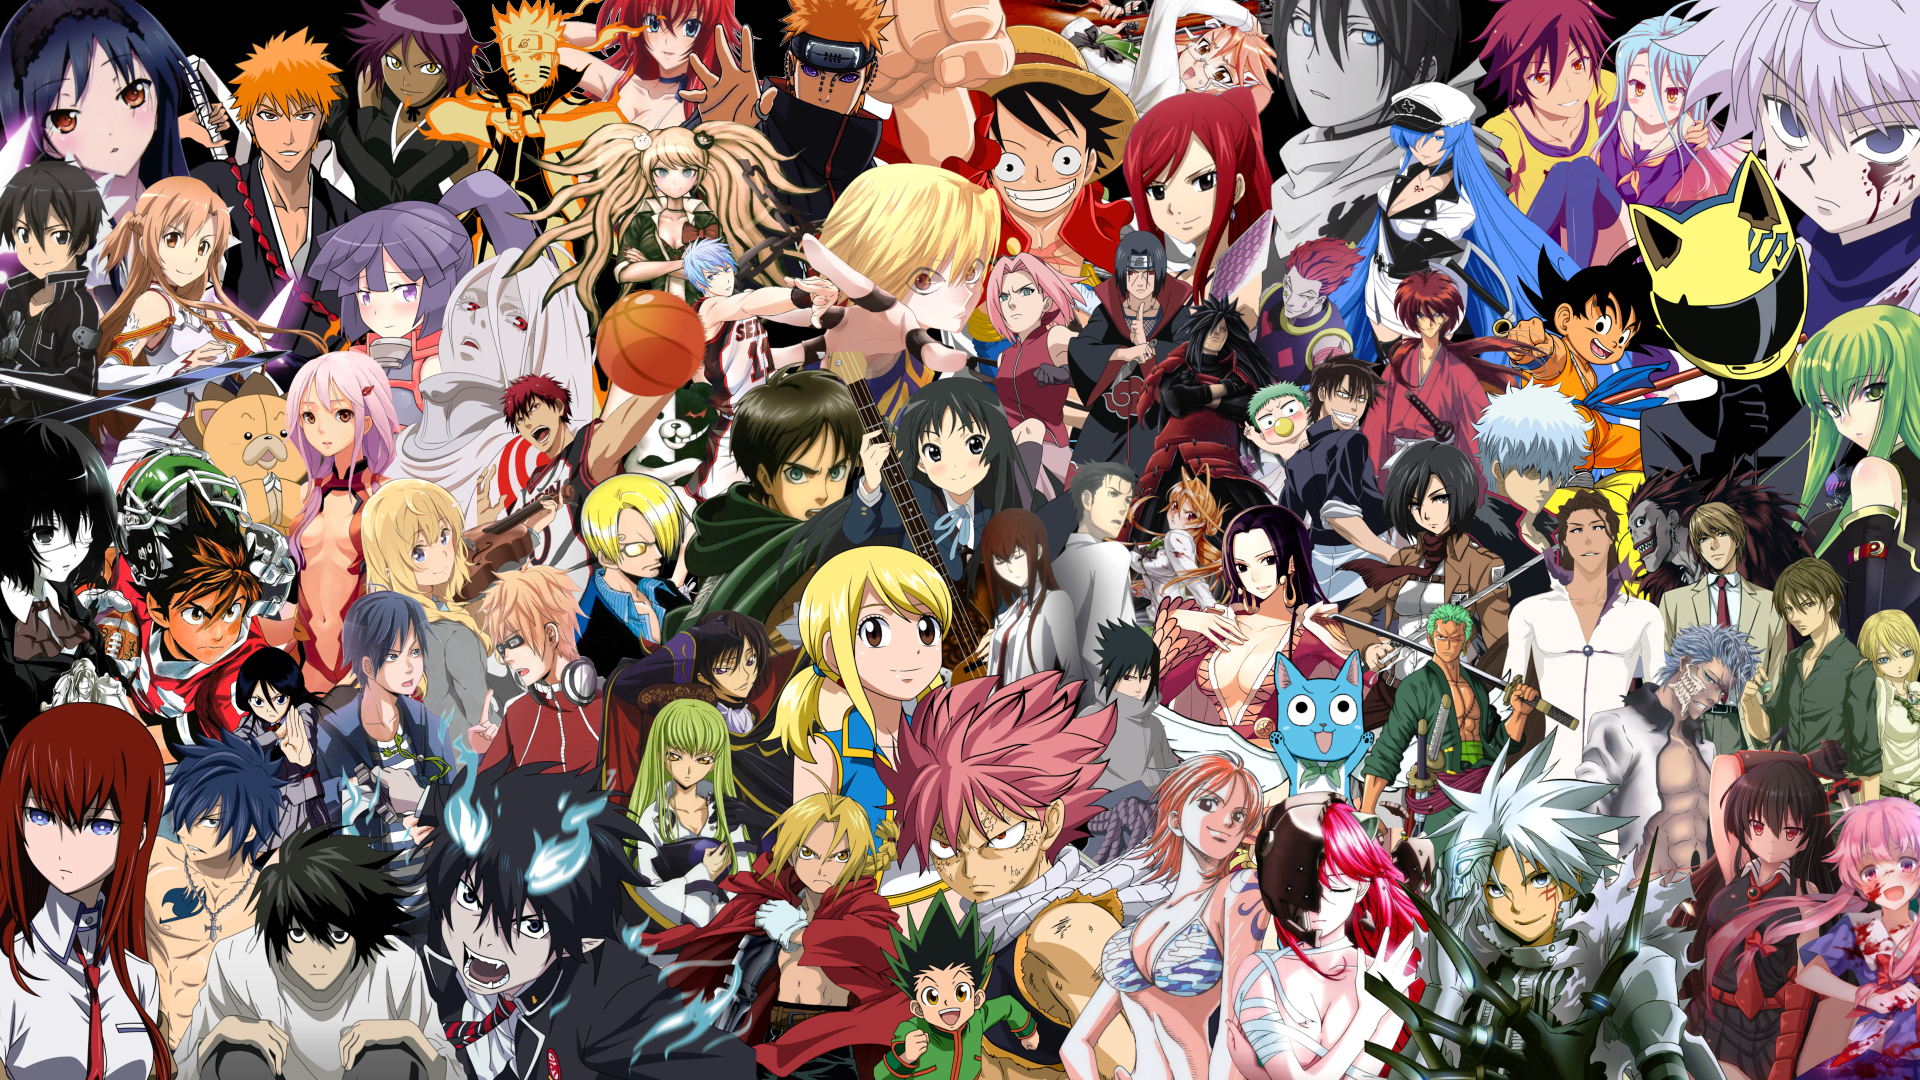 Anime Mix Wallpaper 8k Ultra HD And